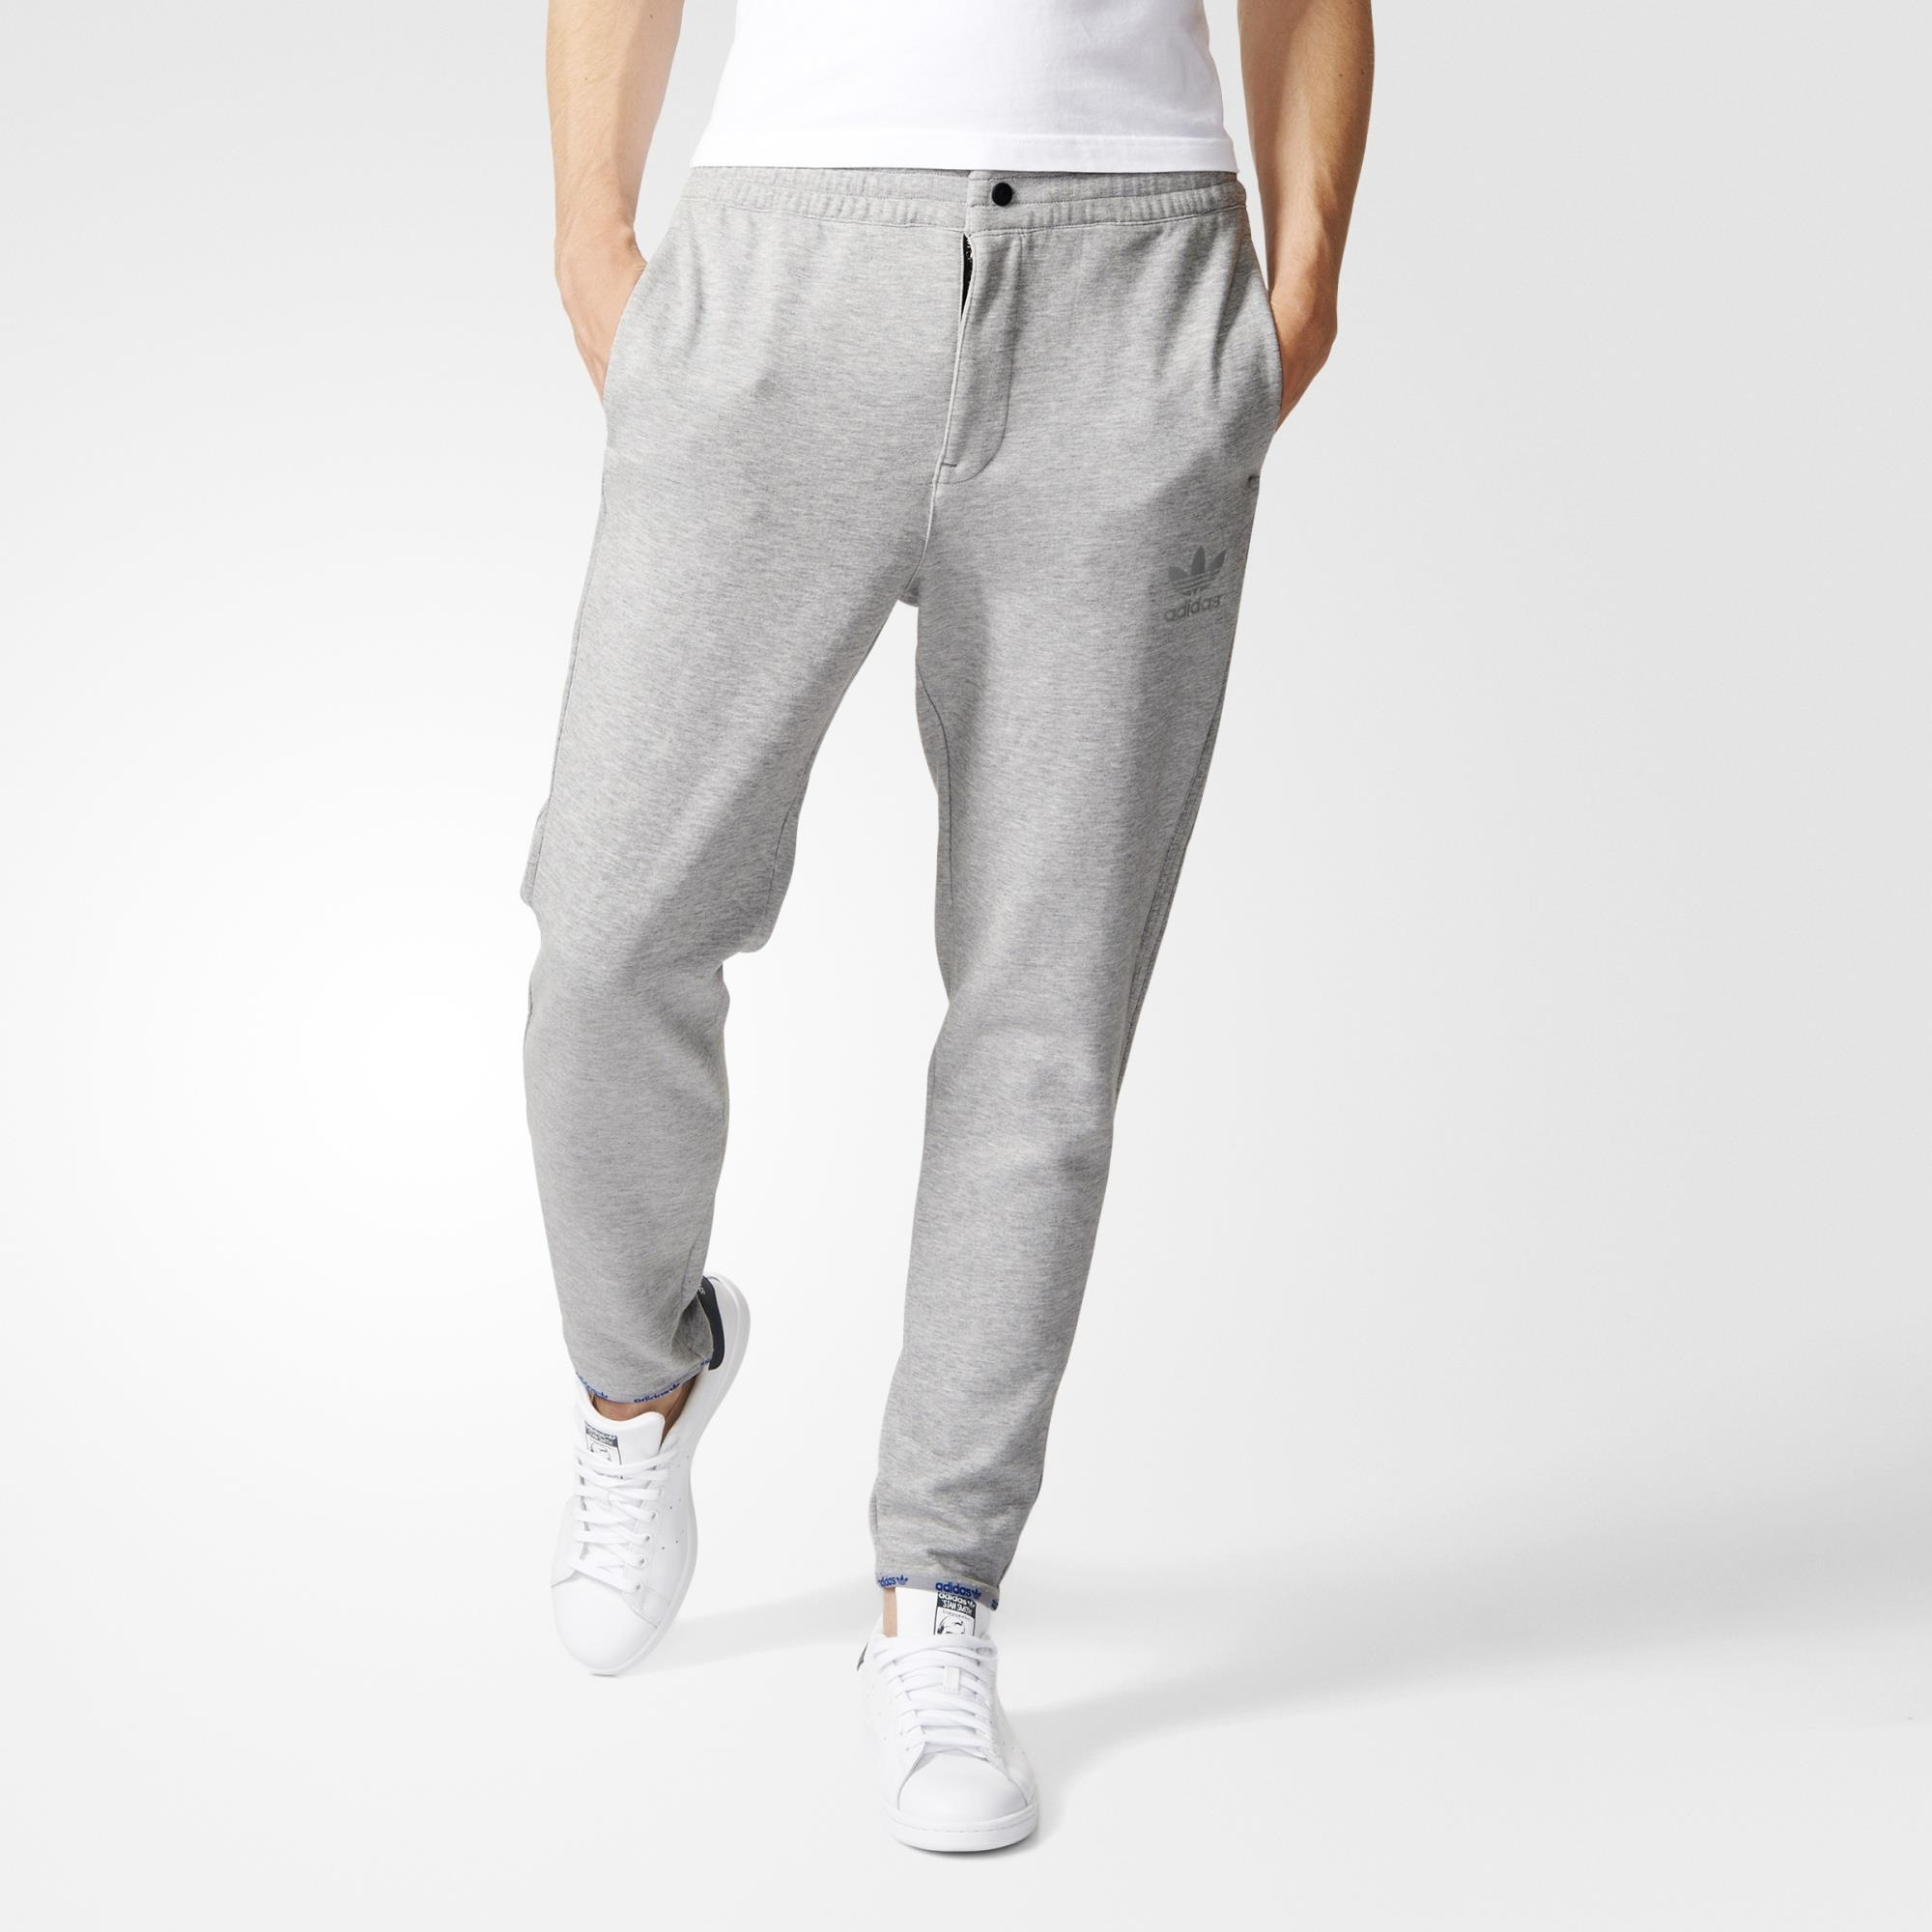 online store c1dba 5e379 adidas Training Track Pants - Grey  adidas US